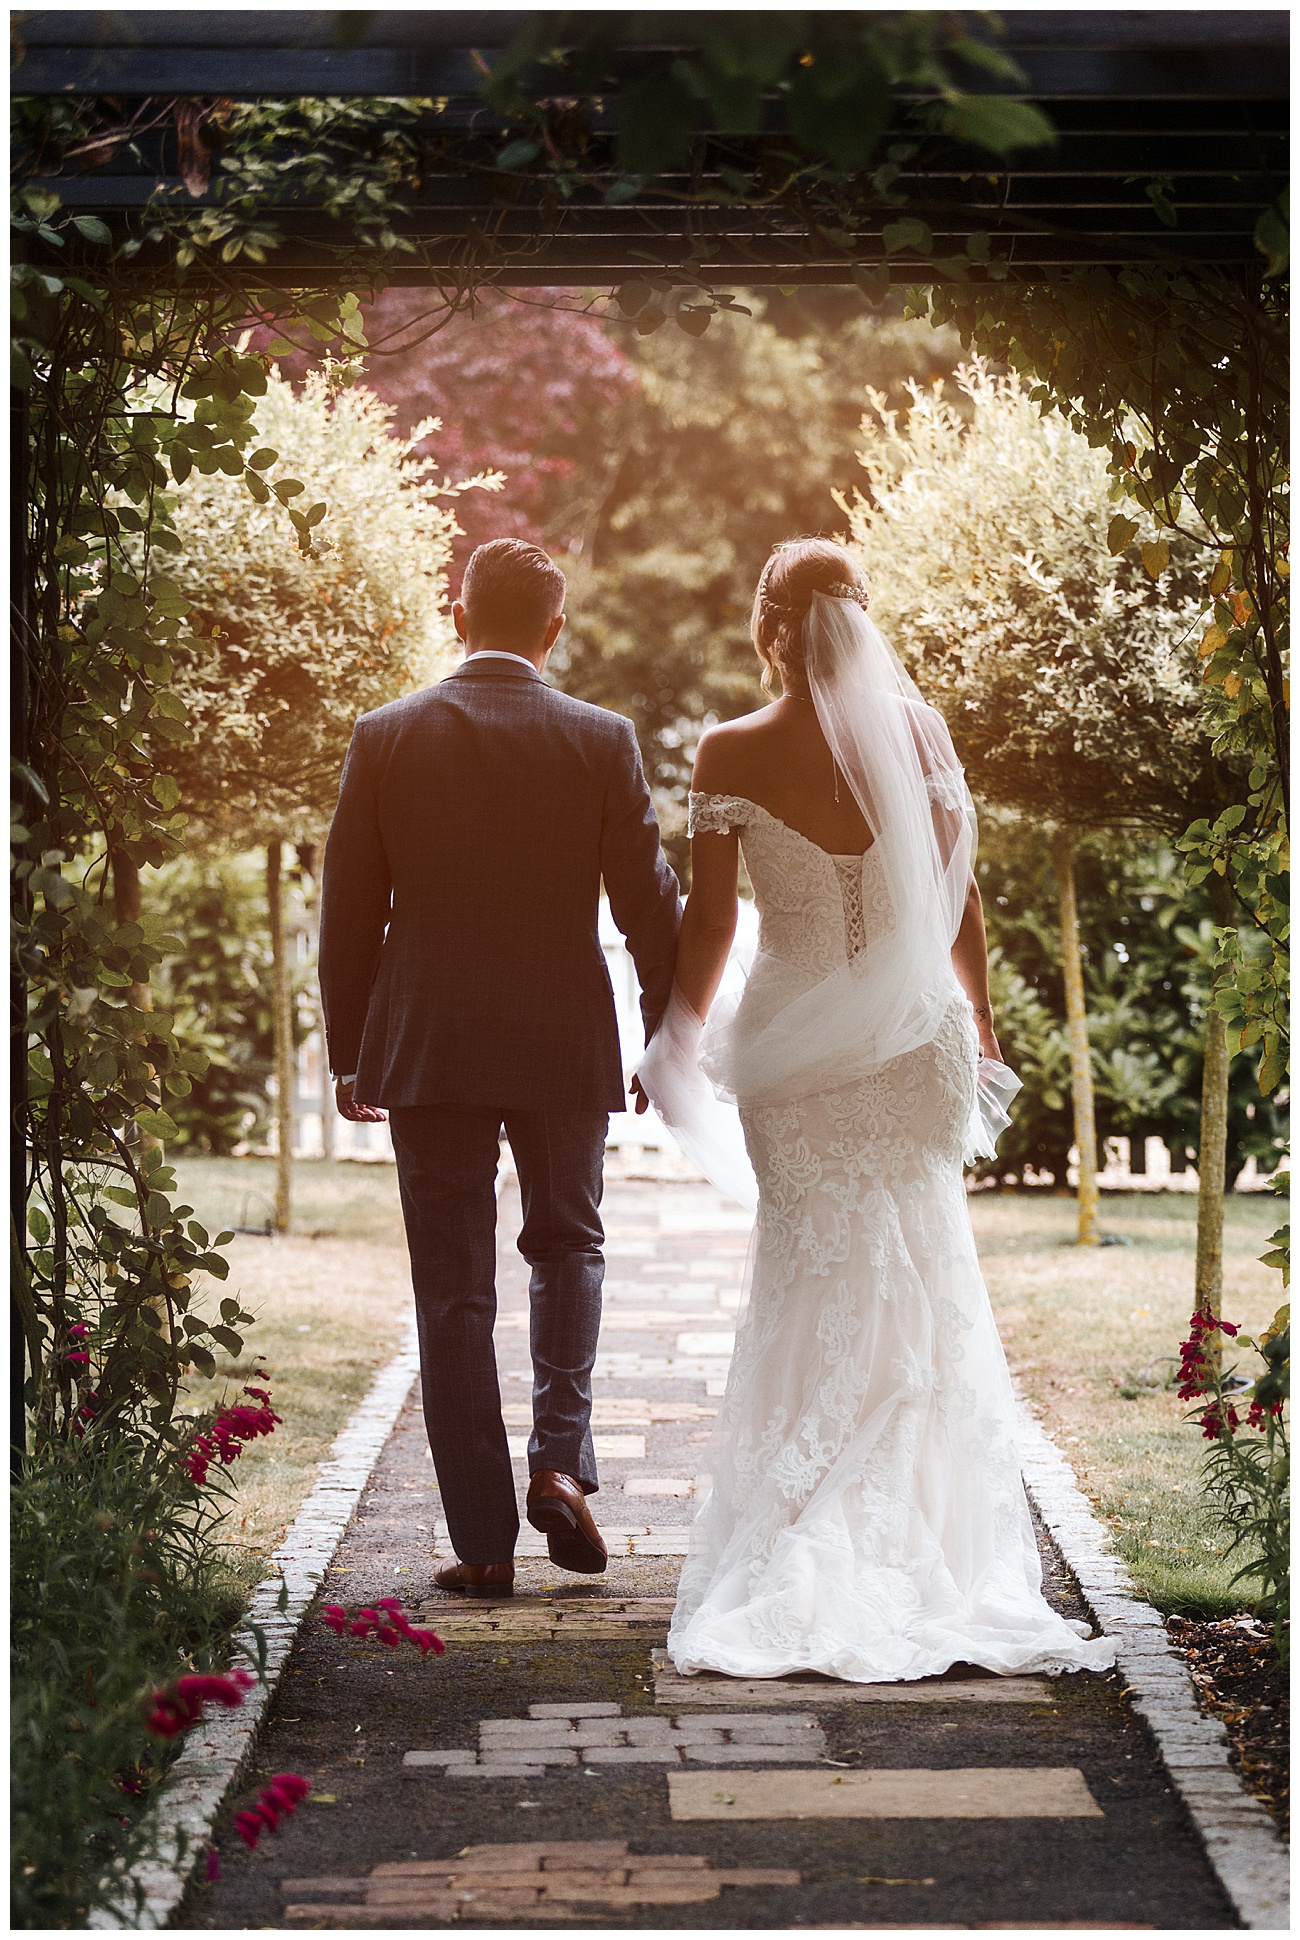 The bride and groom walk away from the camera and through the gardens